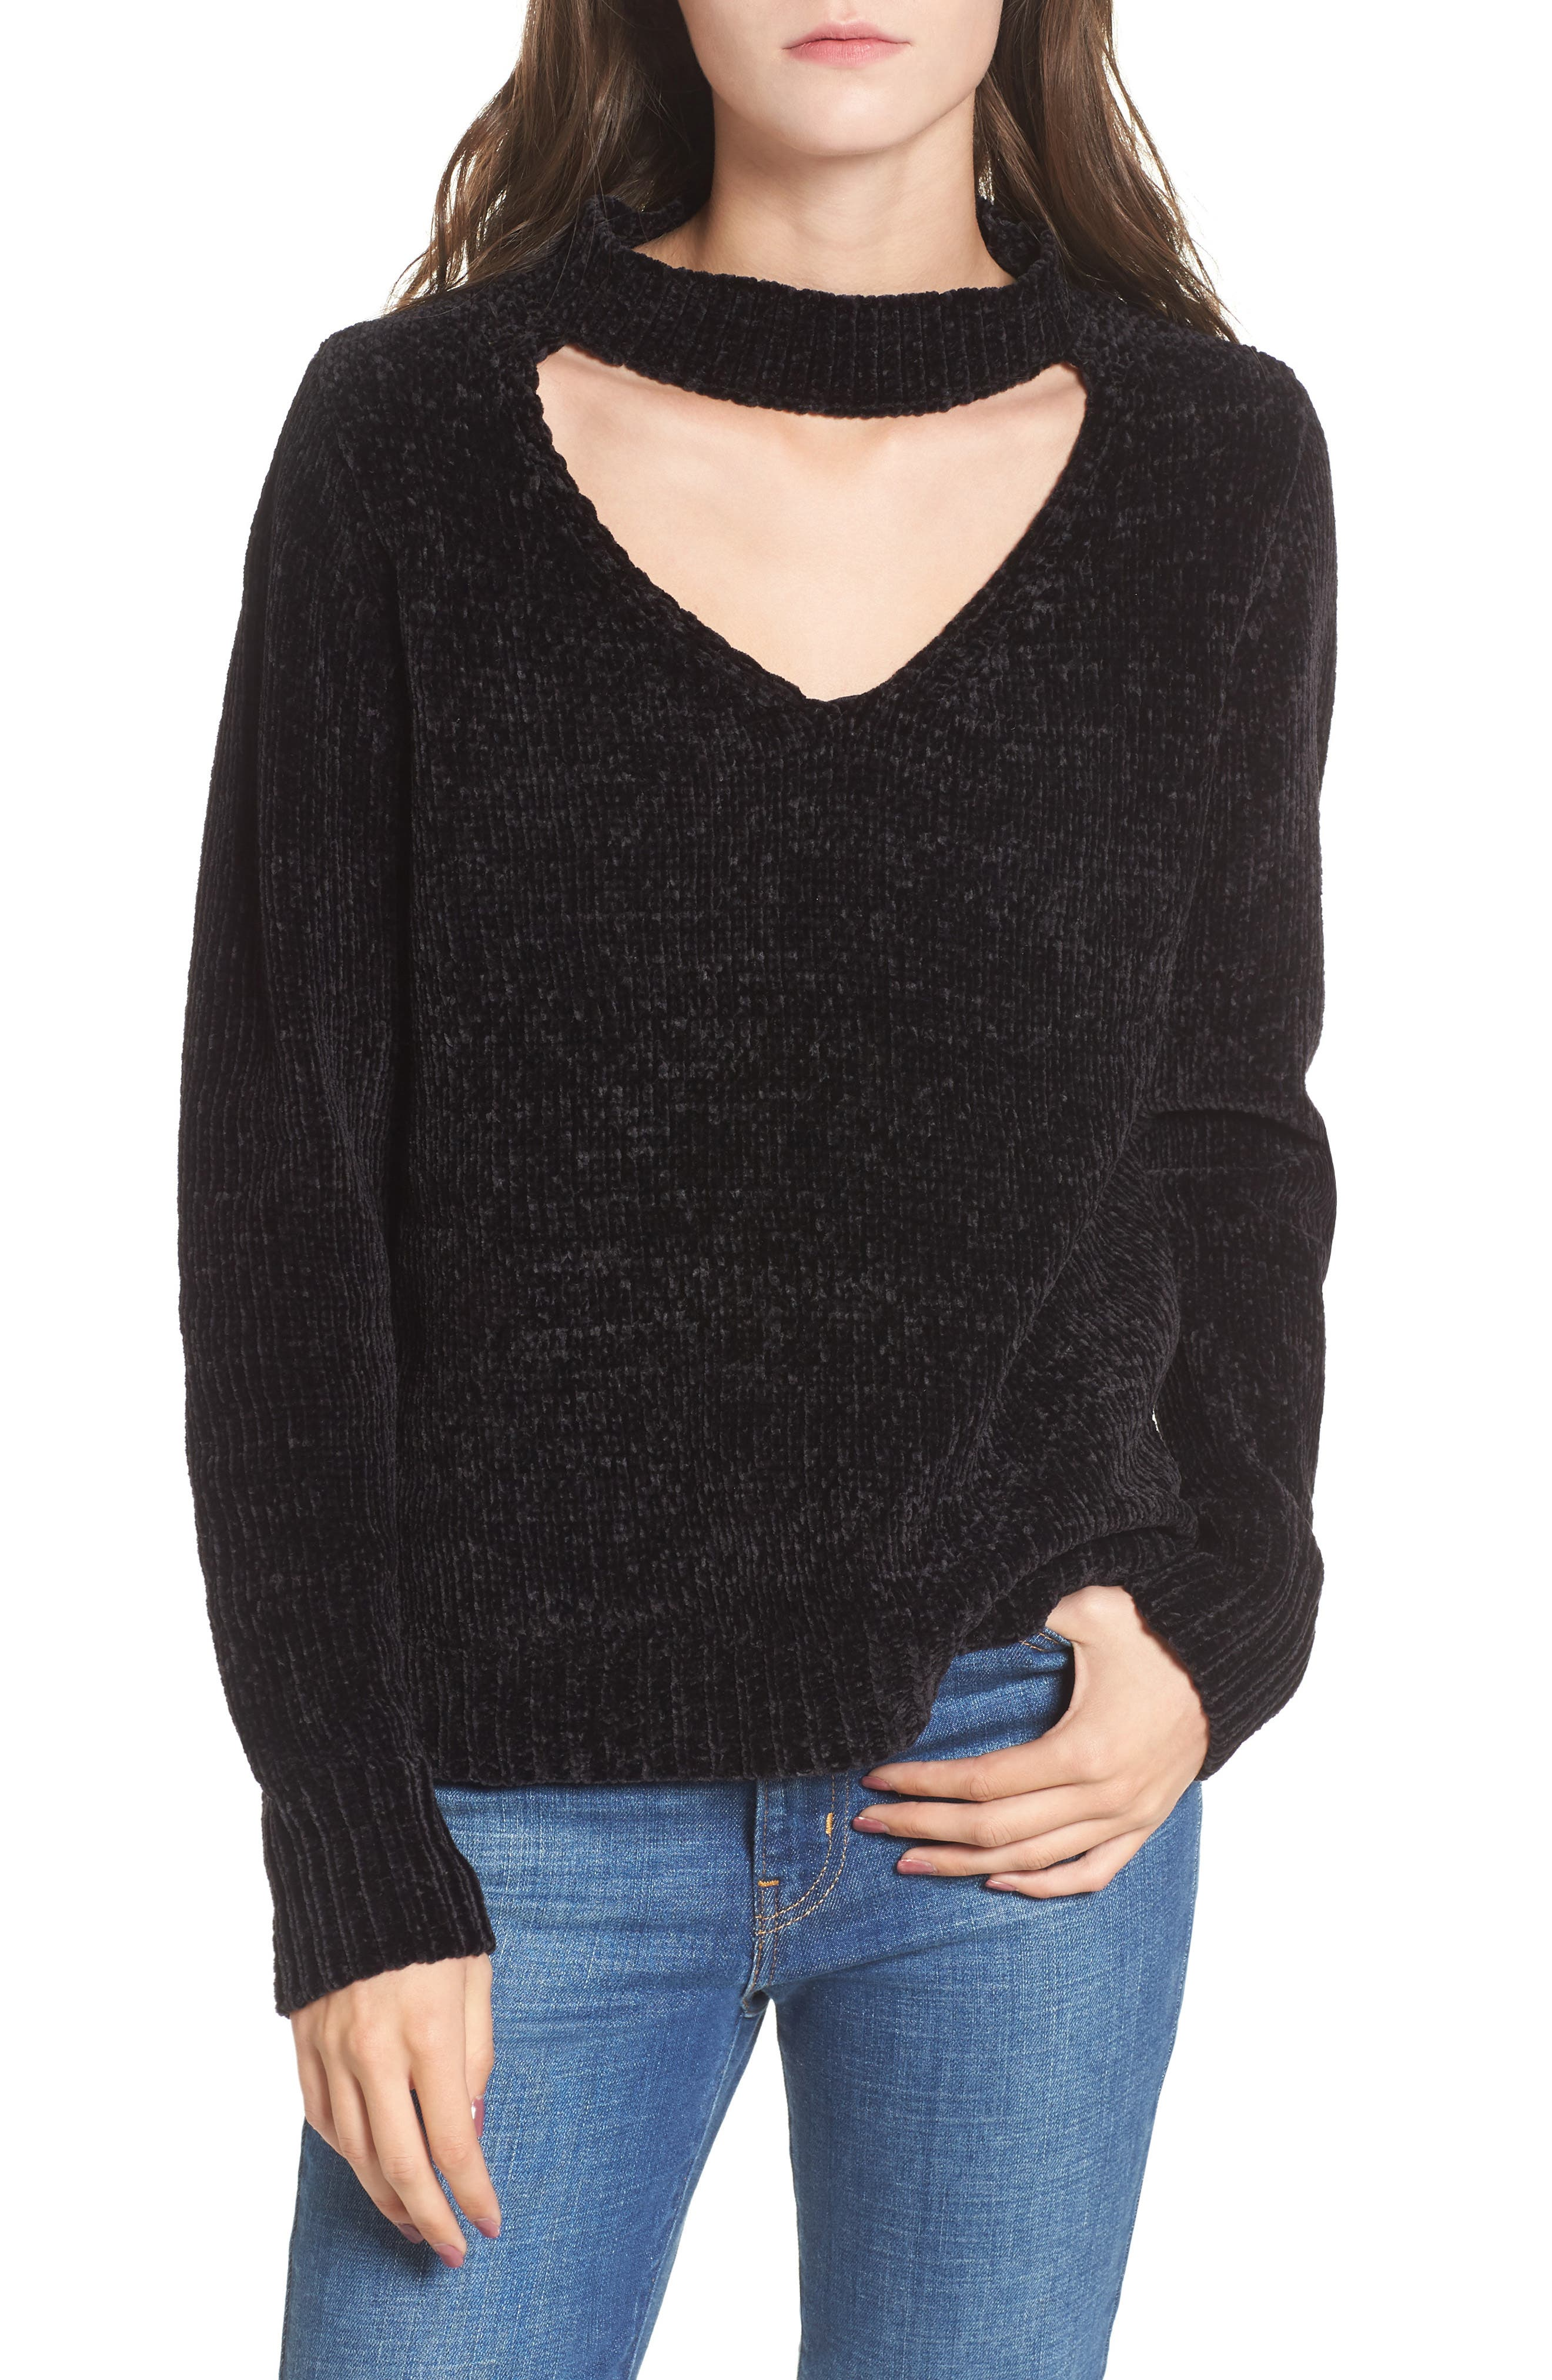 Main Image - Love by Design Chenille Choker Neck Sweater